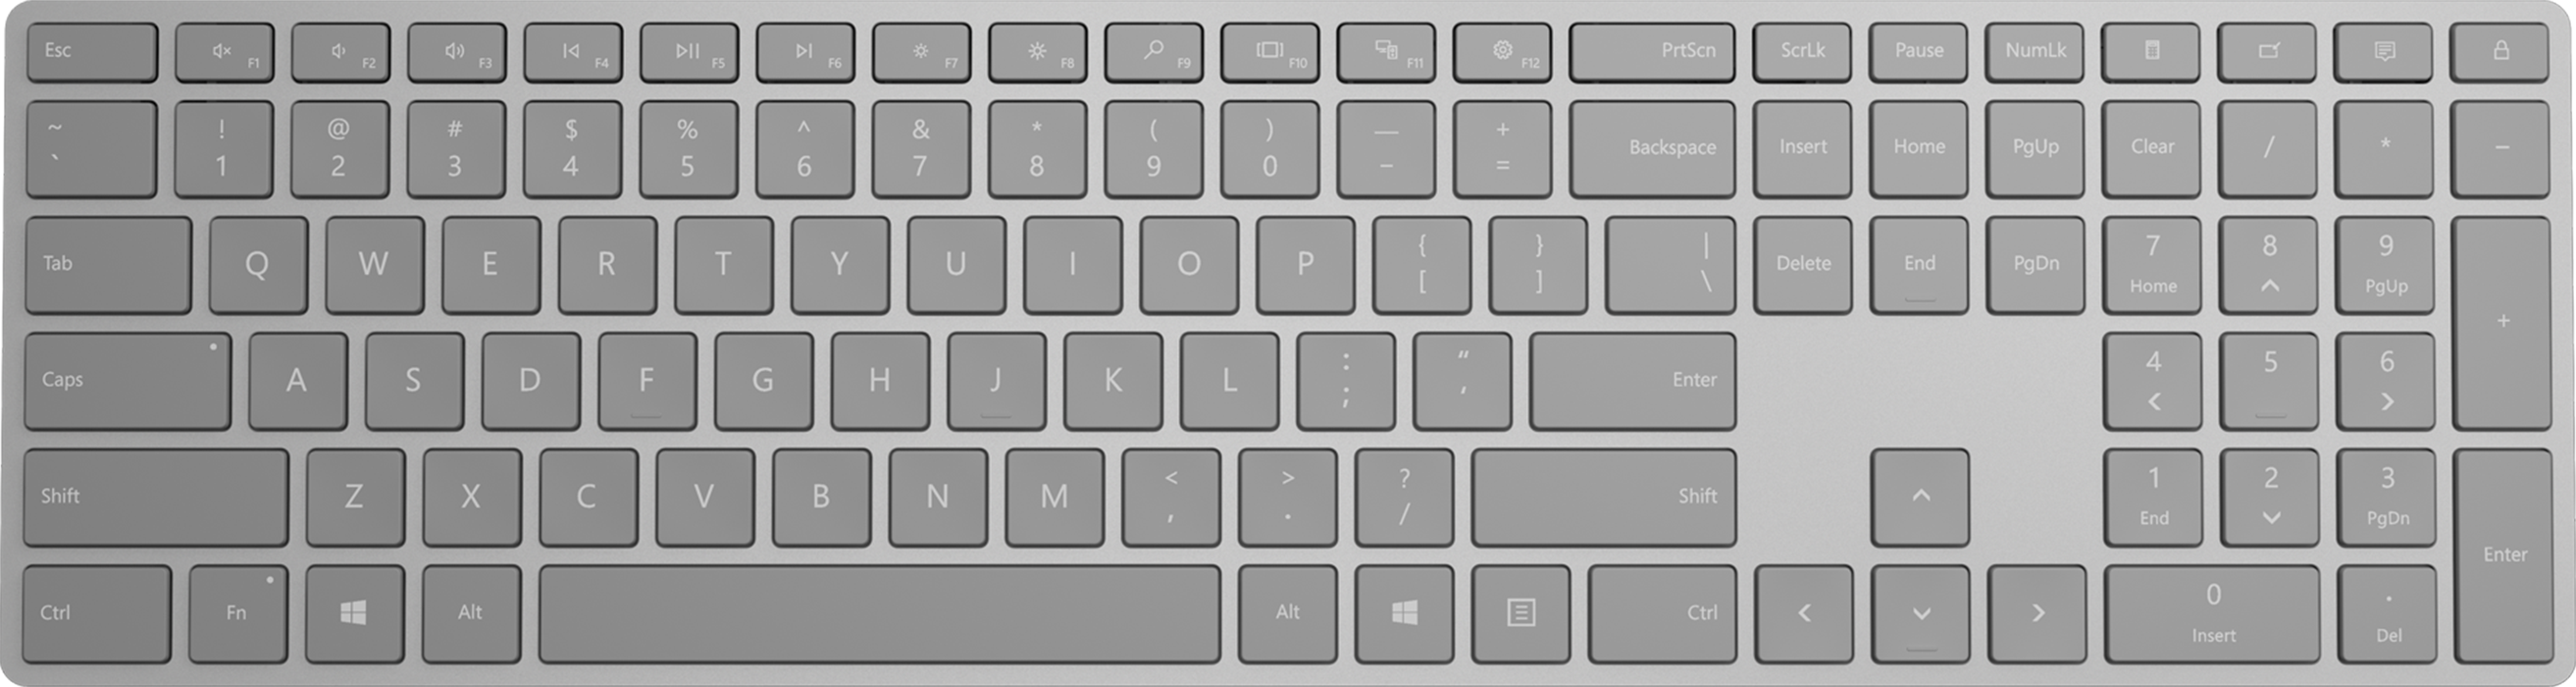 Image of Surface Keyboard